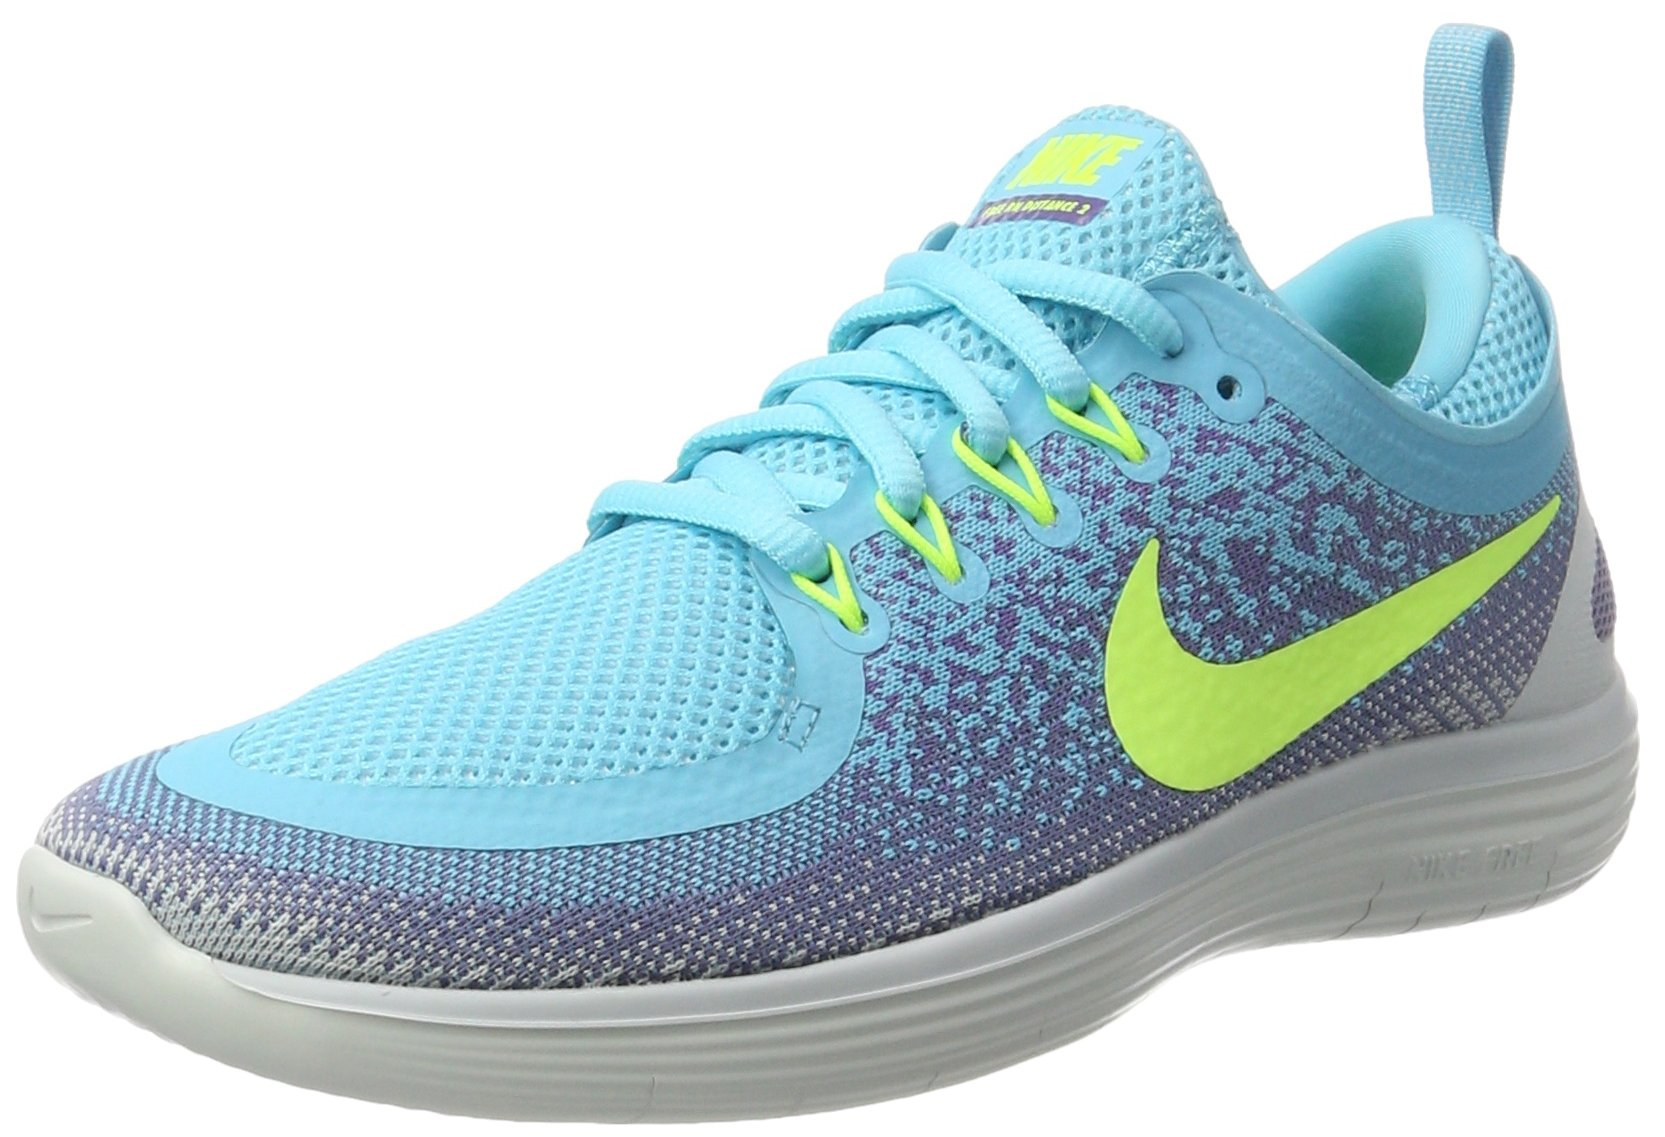 sale retailer 9aa6a 29701 Galleon - NIKE Women s Free RN Distance 2 Running Shoe Polarized  Blue Volt-Iron Purple 8.5